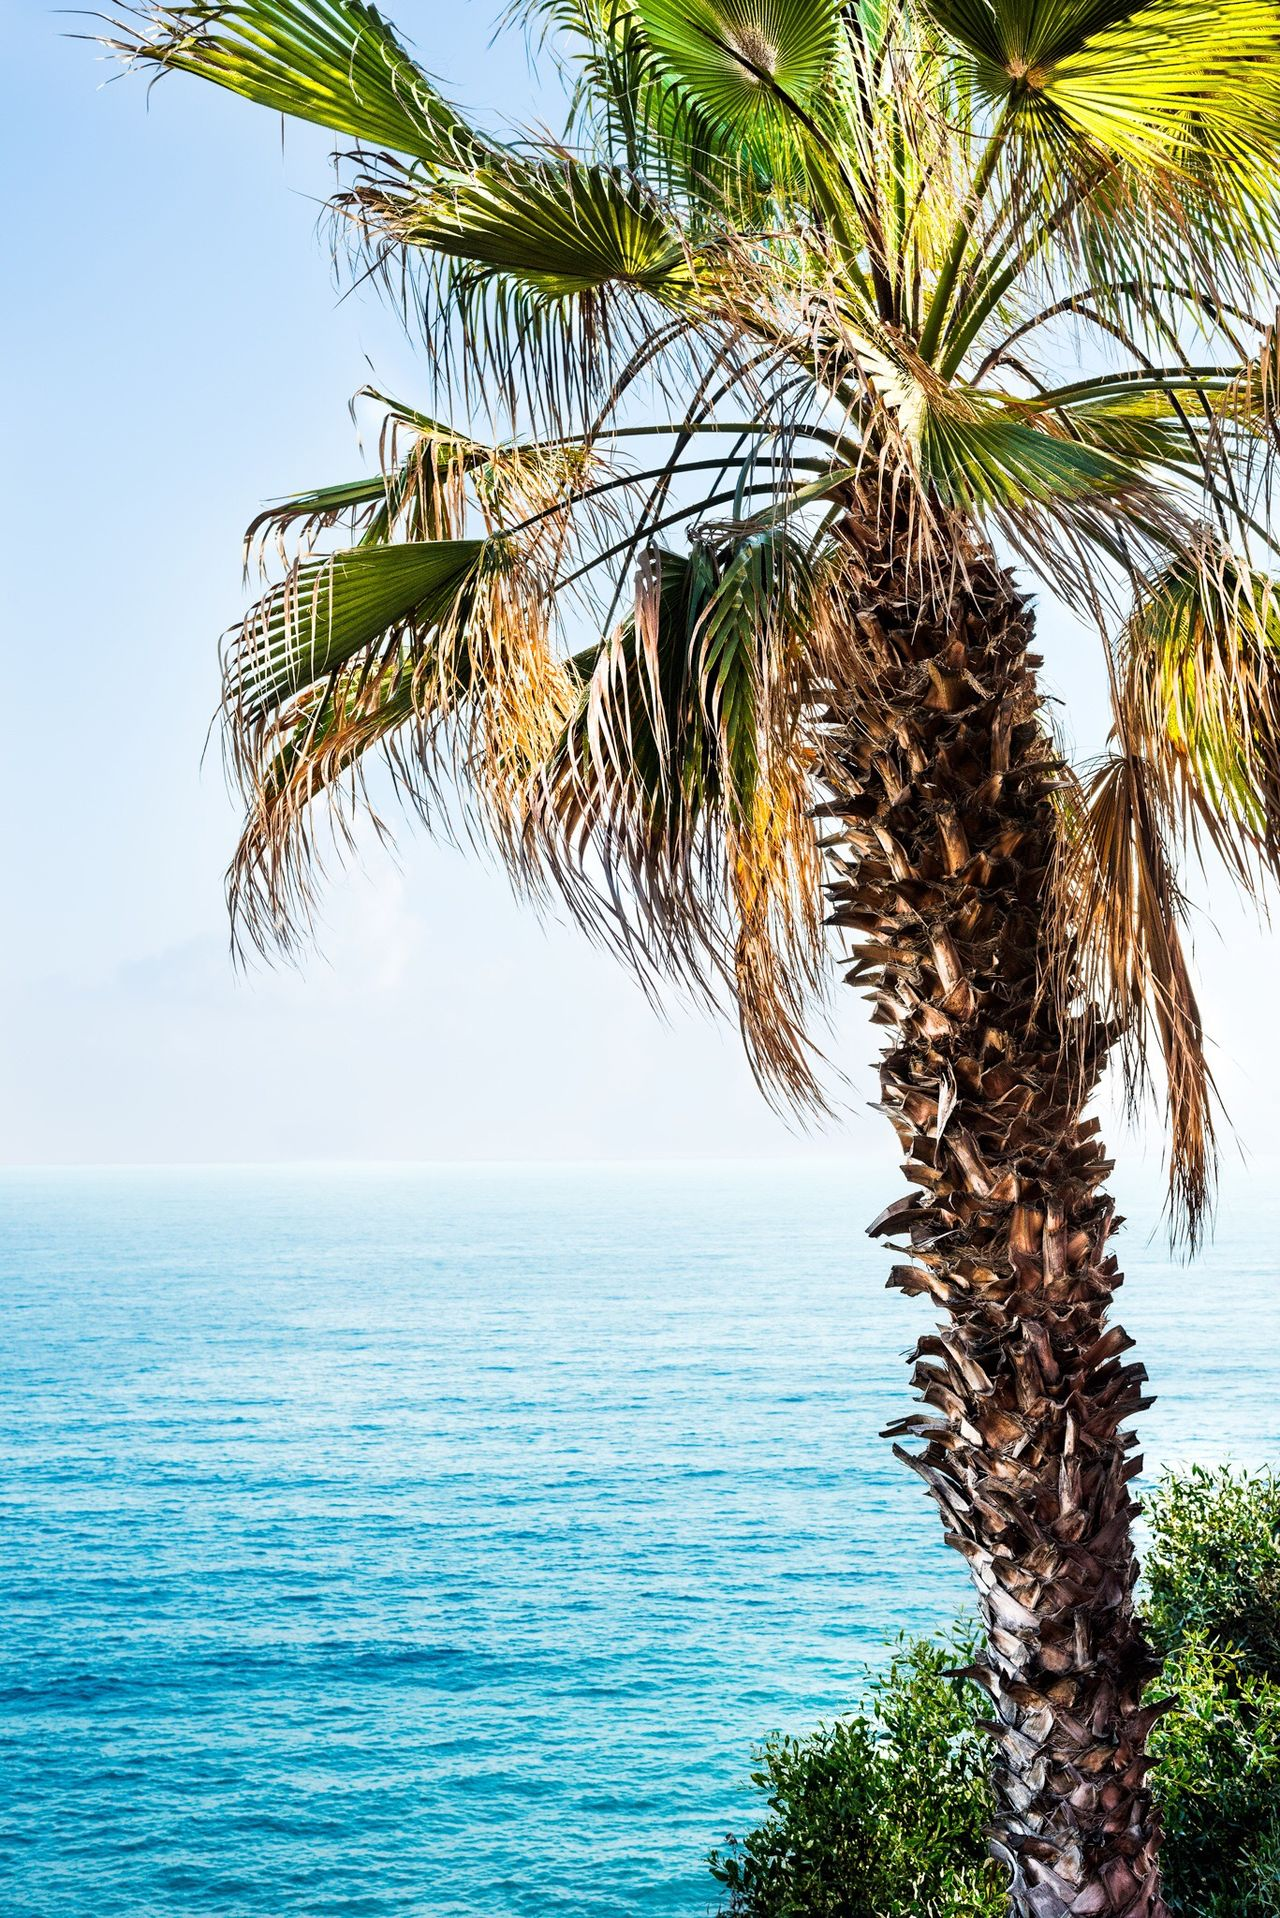 Palmtree with a view Horizon Over Water Sea Nature Palm Tree Scenics Beauty In Nature Outdoors No People Vertical Sky Tree Clear Sky Single Tree Beach Vacations Travel Traveling